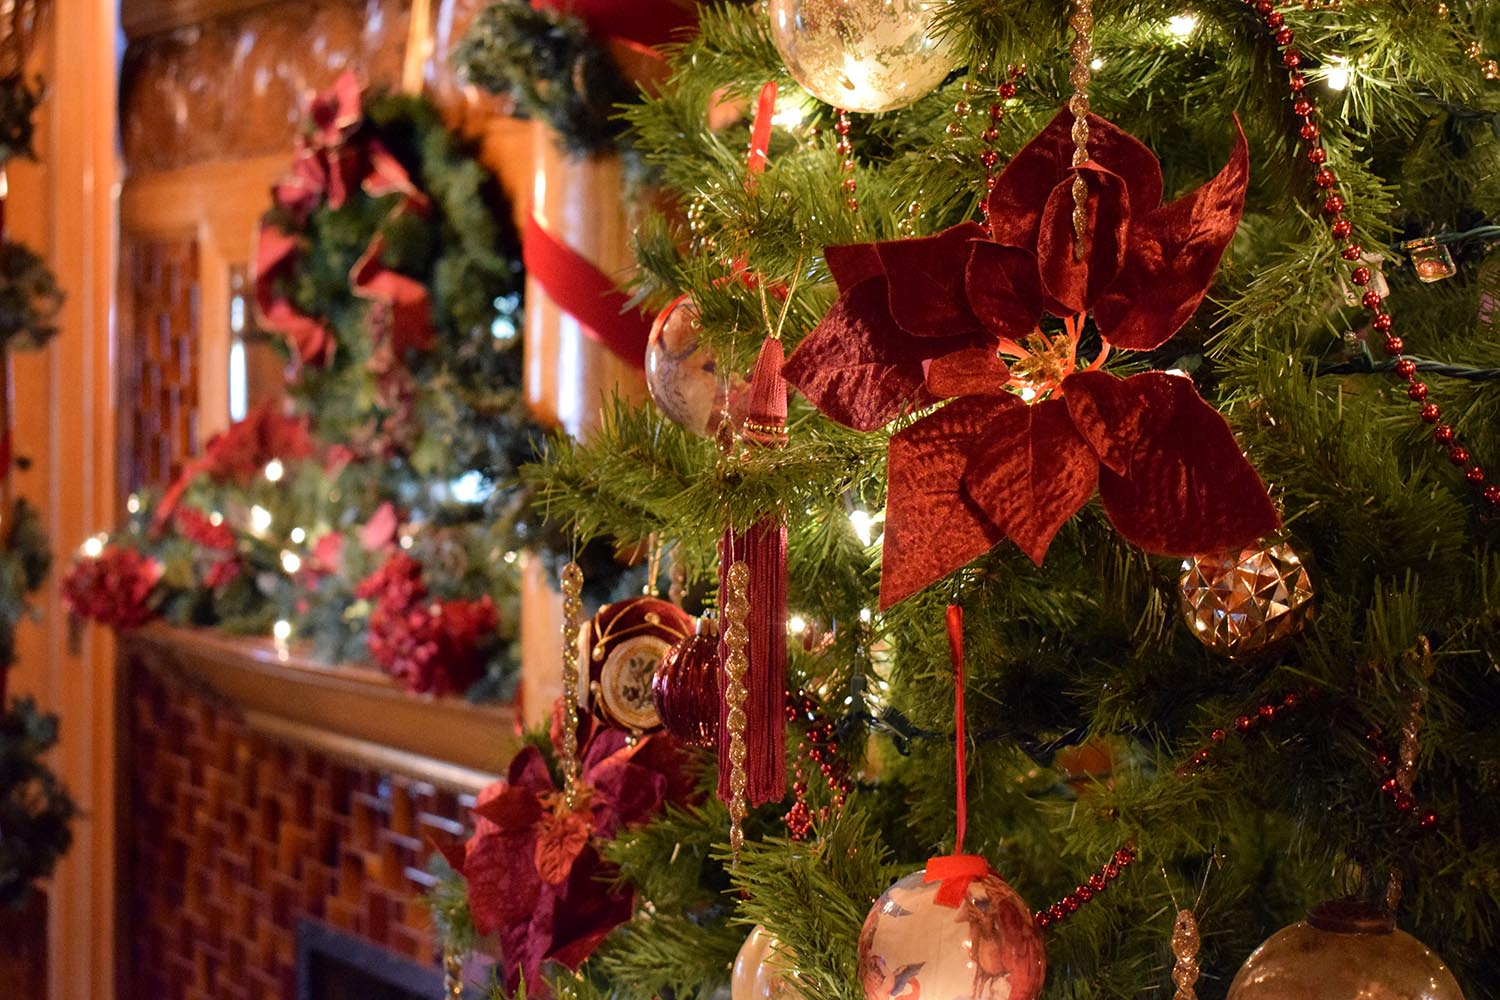 The G.W. Frank Museum of History and Culture will be decorated for the holiday season through Jan. 4. Free hot cocoa and apple cider are available for guests each Saturday. (Photo by April White, G.W. Frank Museum of History and Culture)